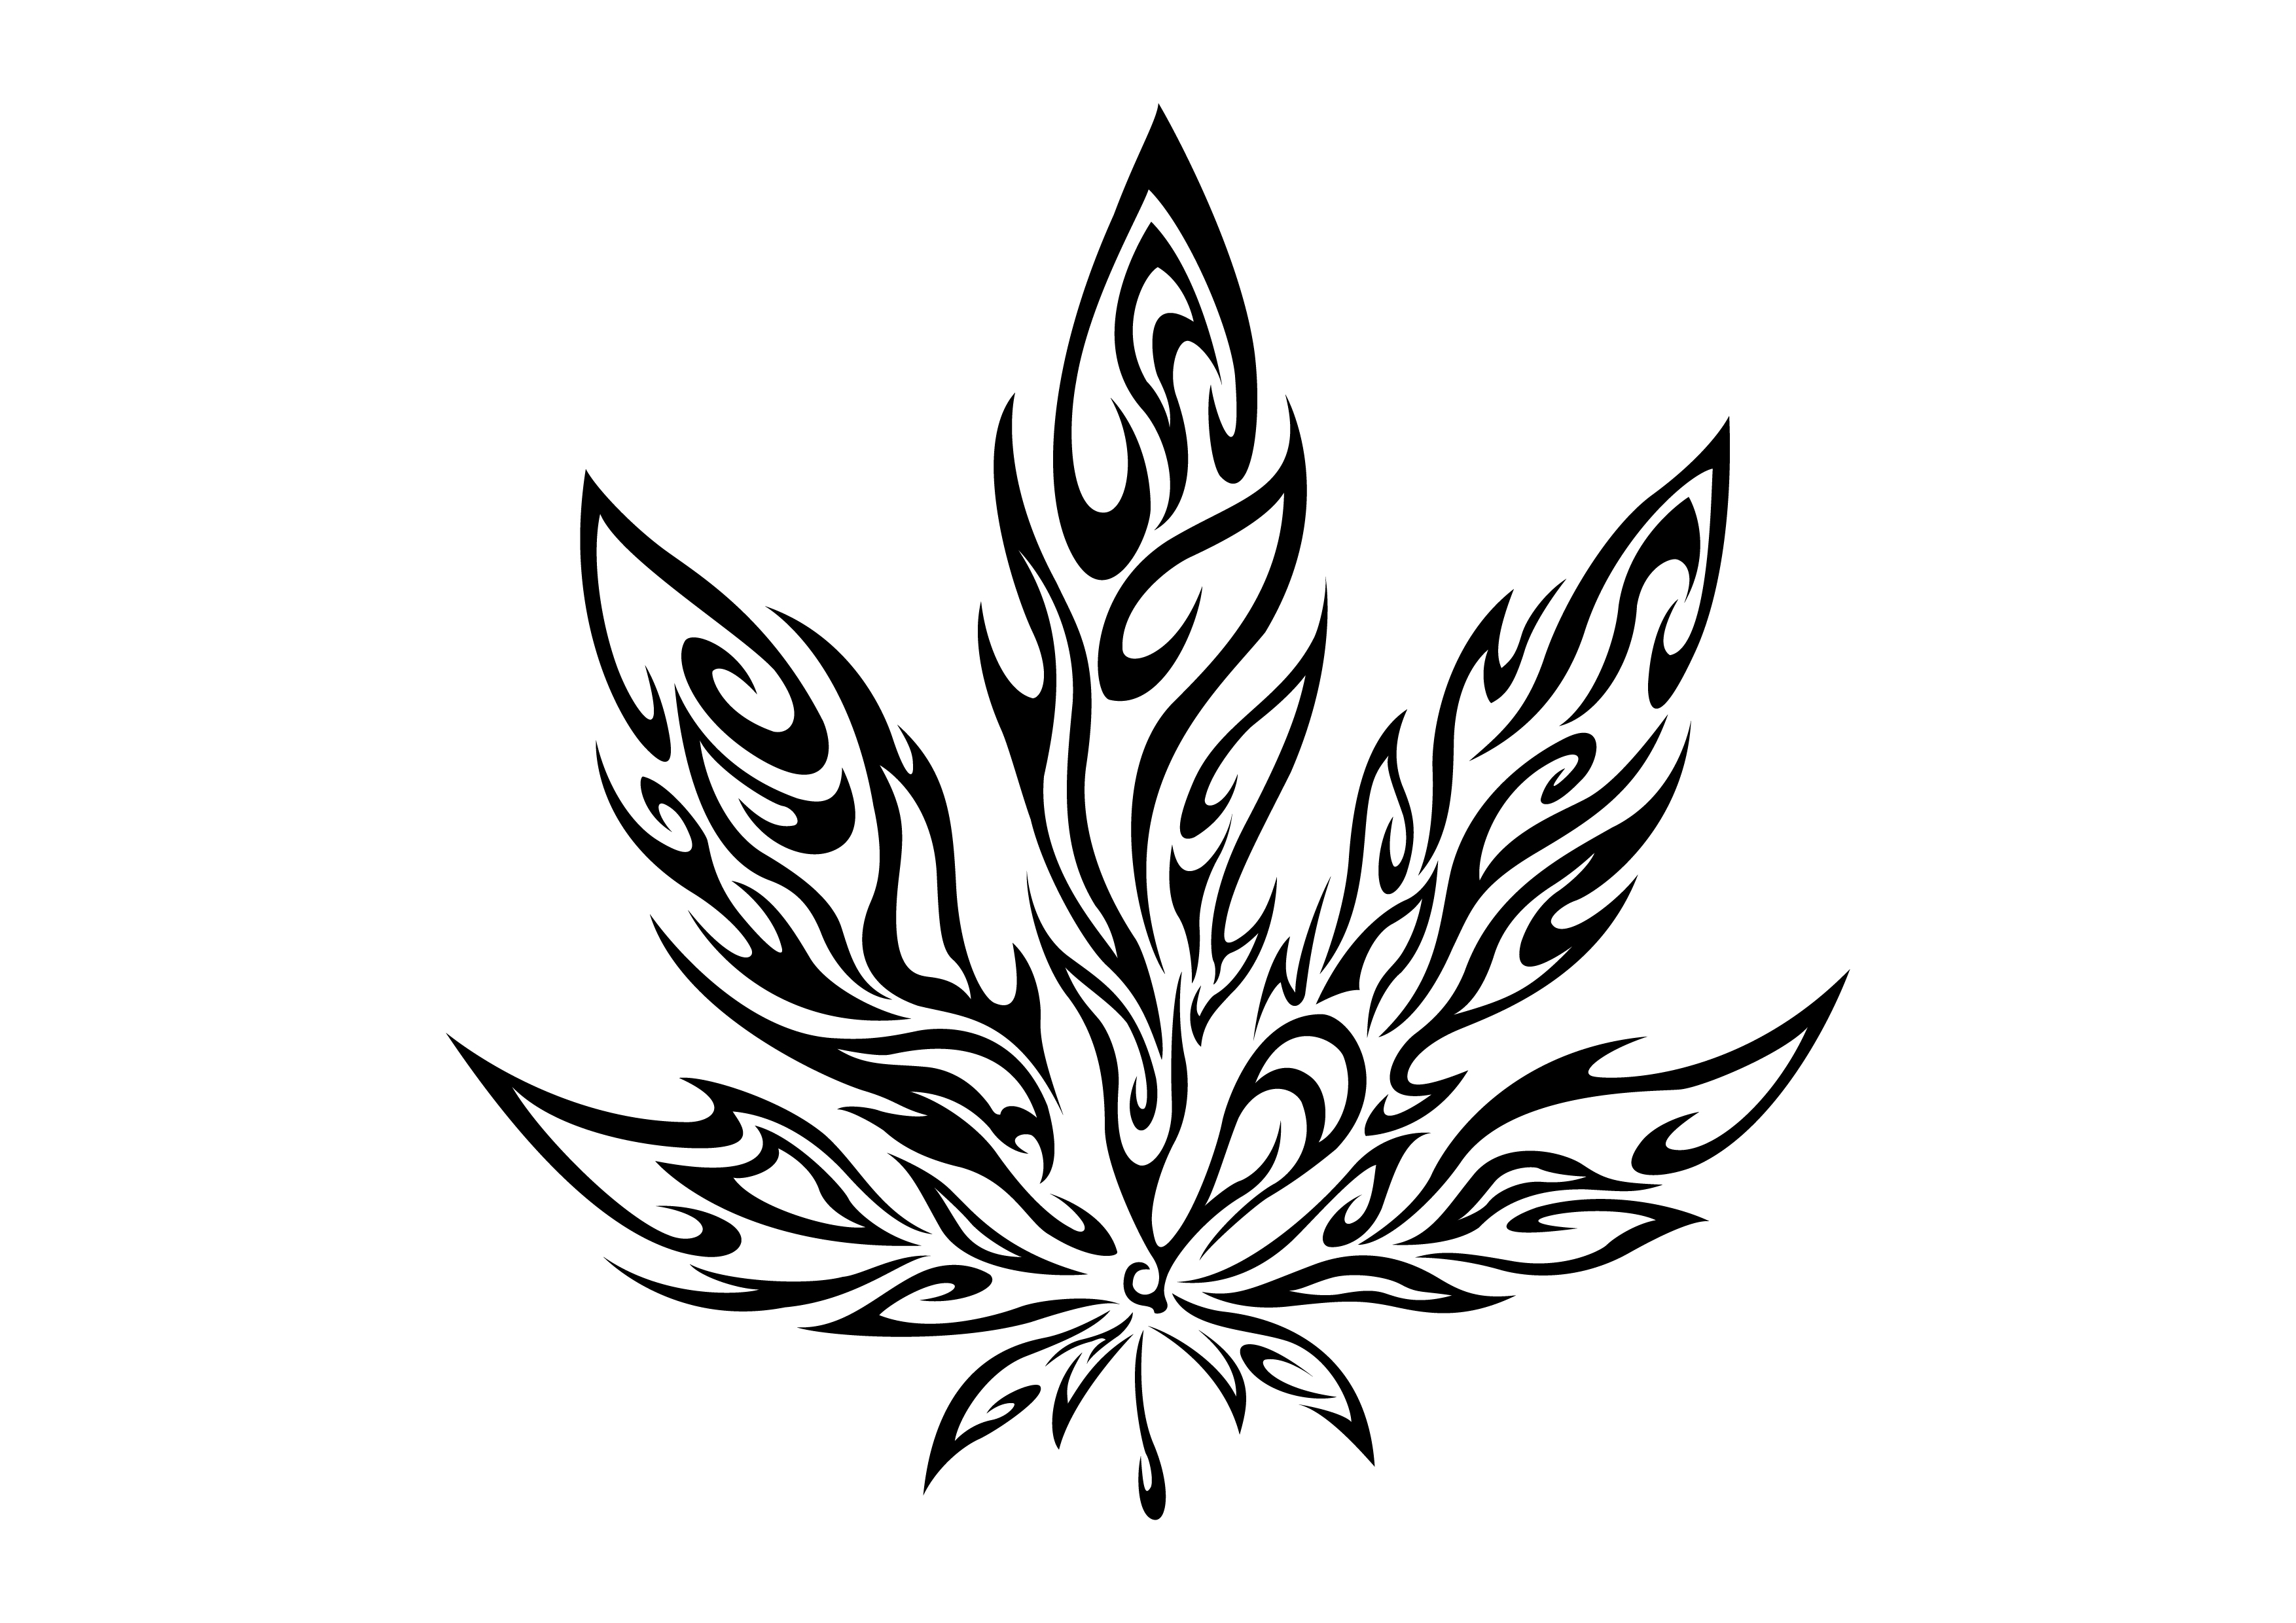 how to draw a simple pot leaf weed leaf drawing tumblr at getdrawings free download leaf simple a draw to pot how